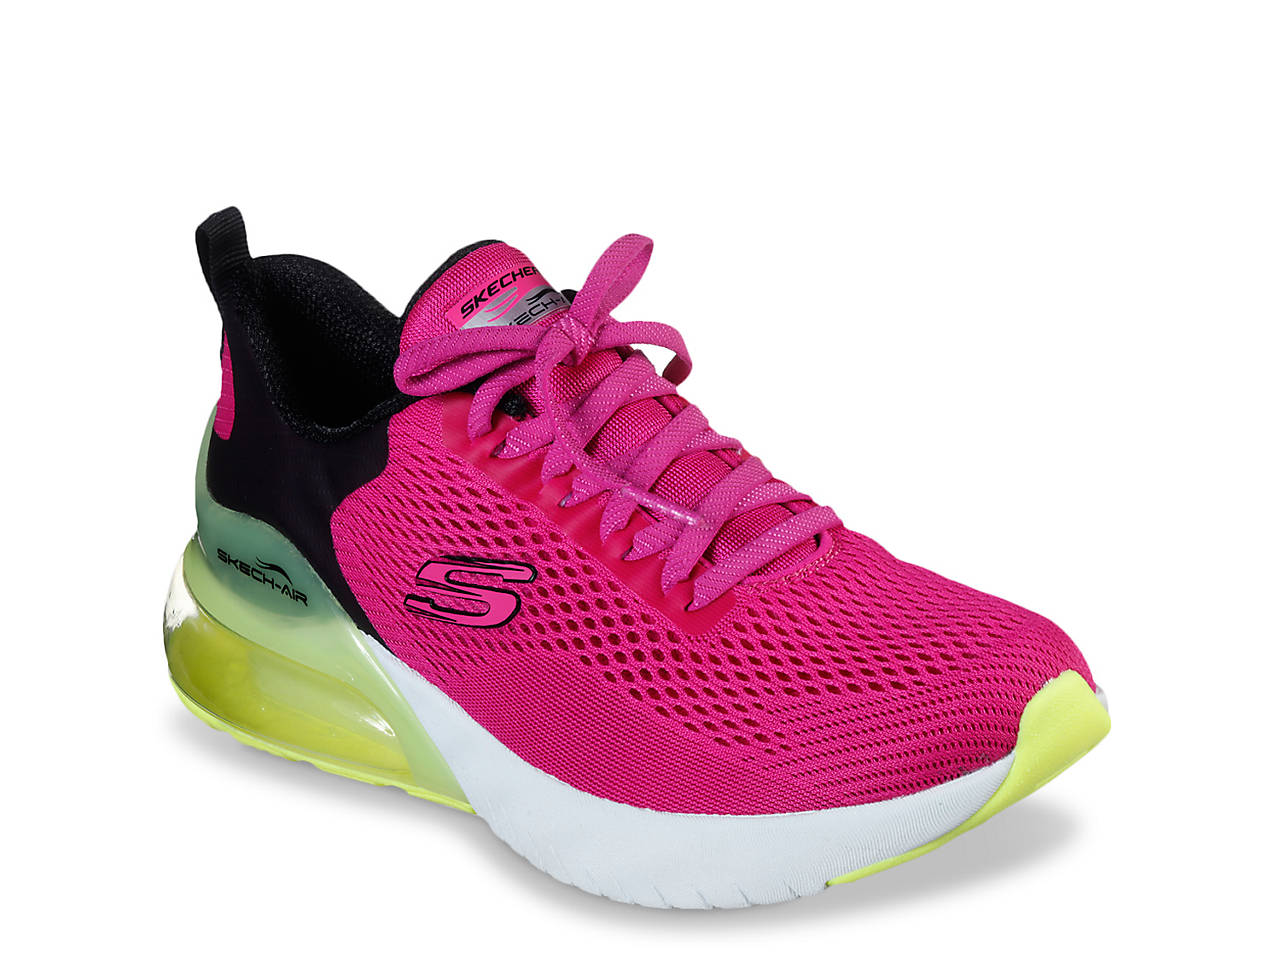 Skech Air Stratus Wind Breeze Sneaker Women's